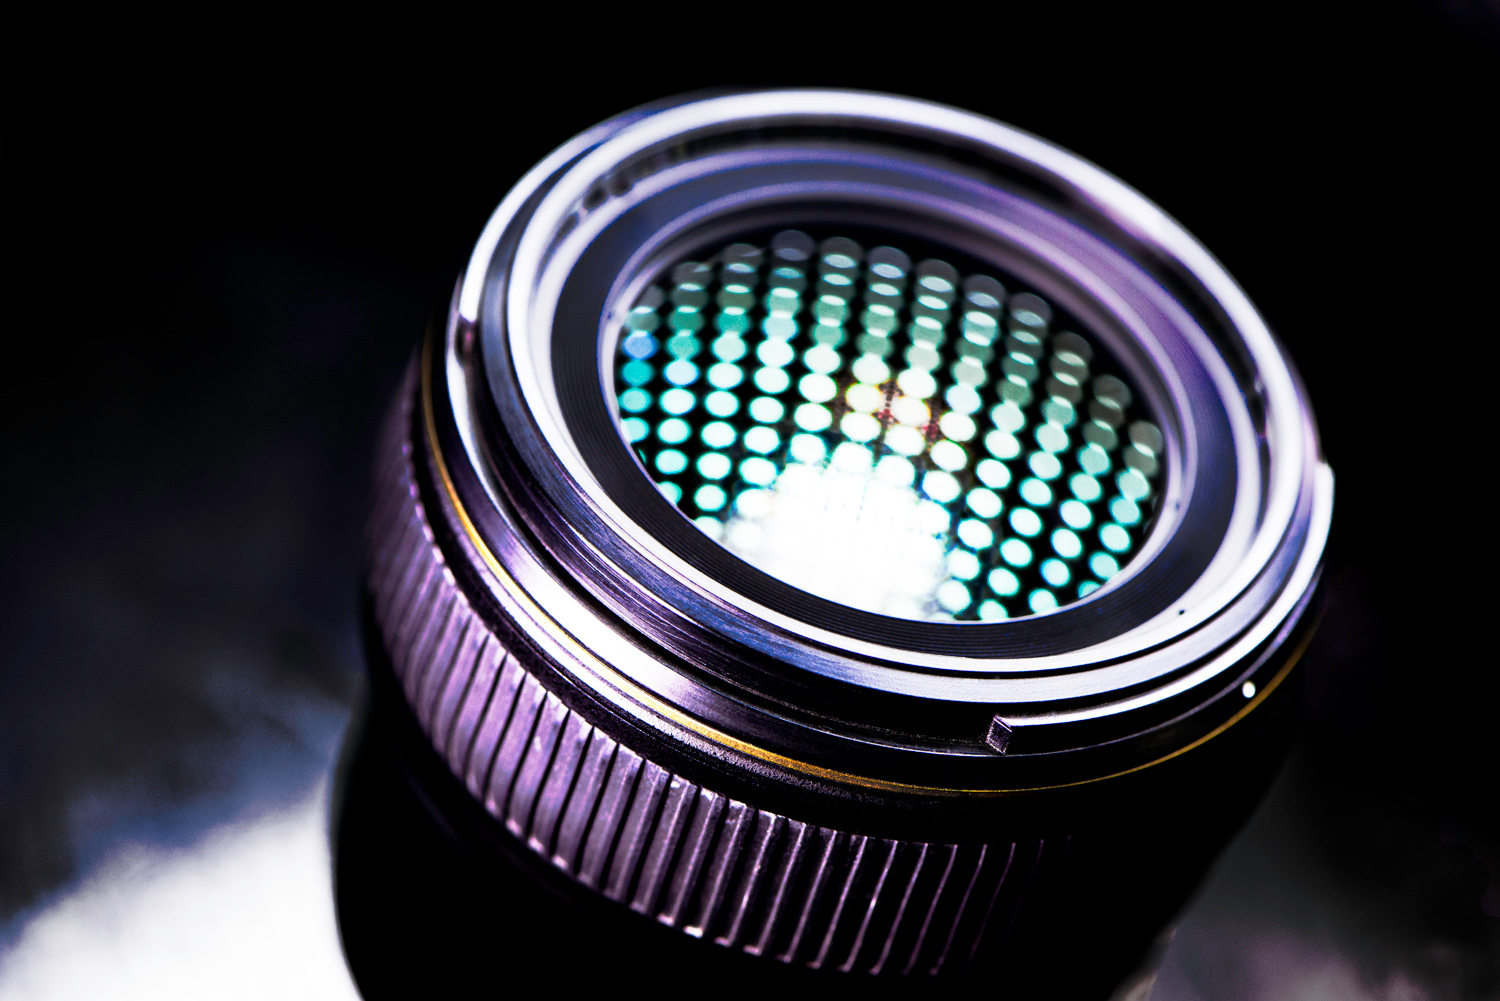 How To Protect Your Camera Against Lens Fungal Damage